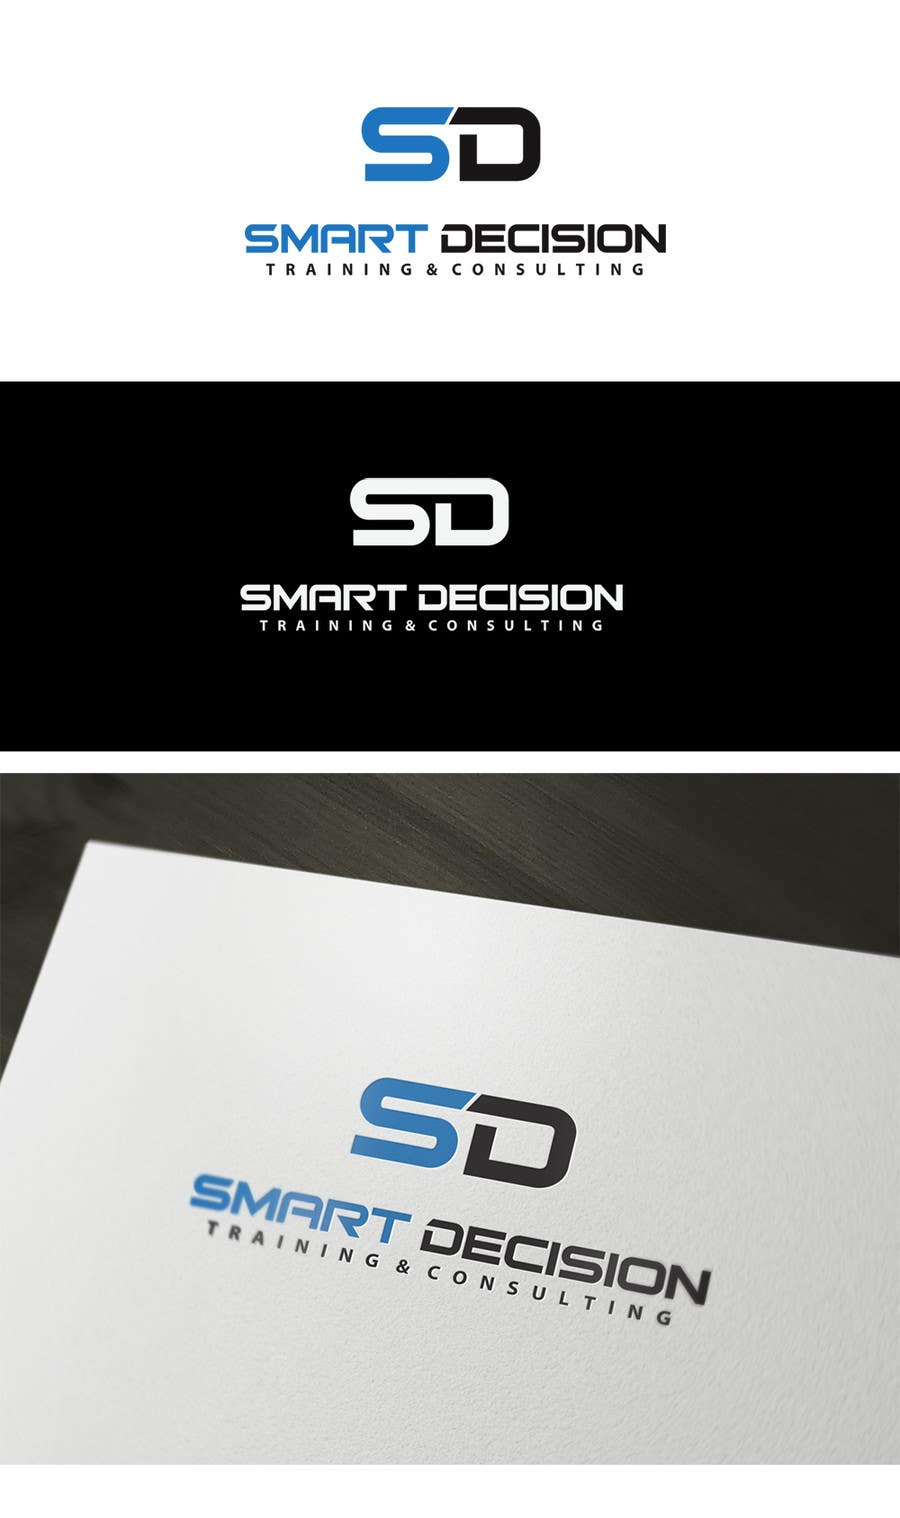 #1 for Logo Design for Smart Decision and Skills Training & Consulting by gfxbucket